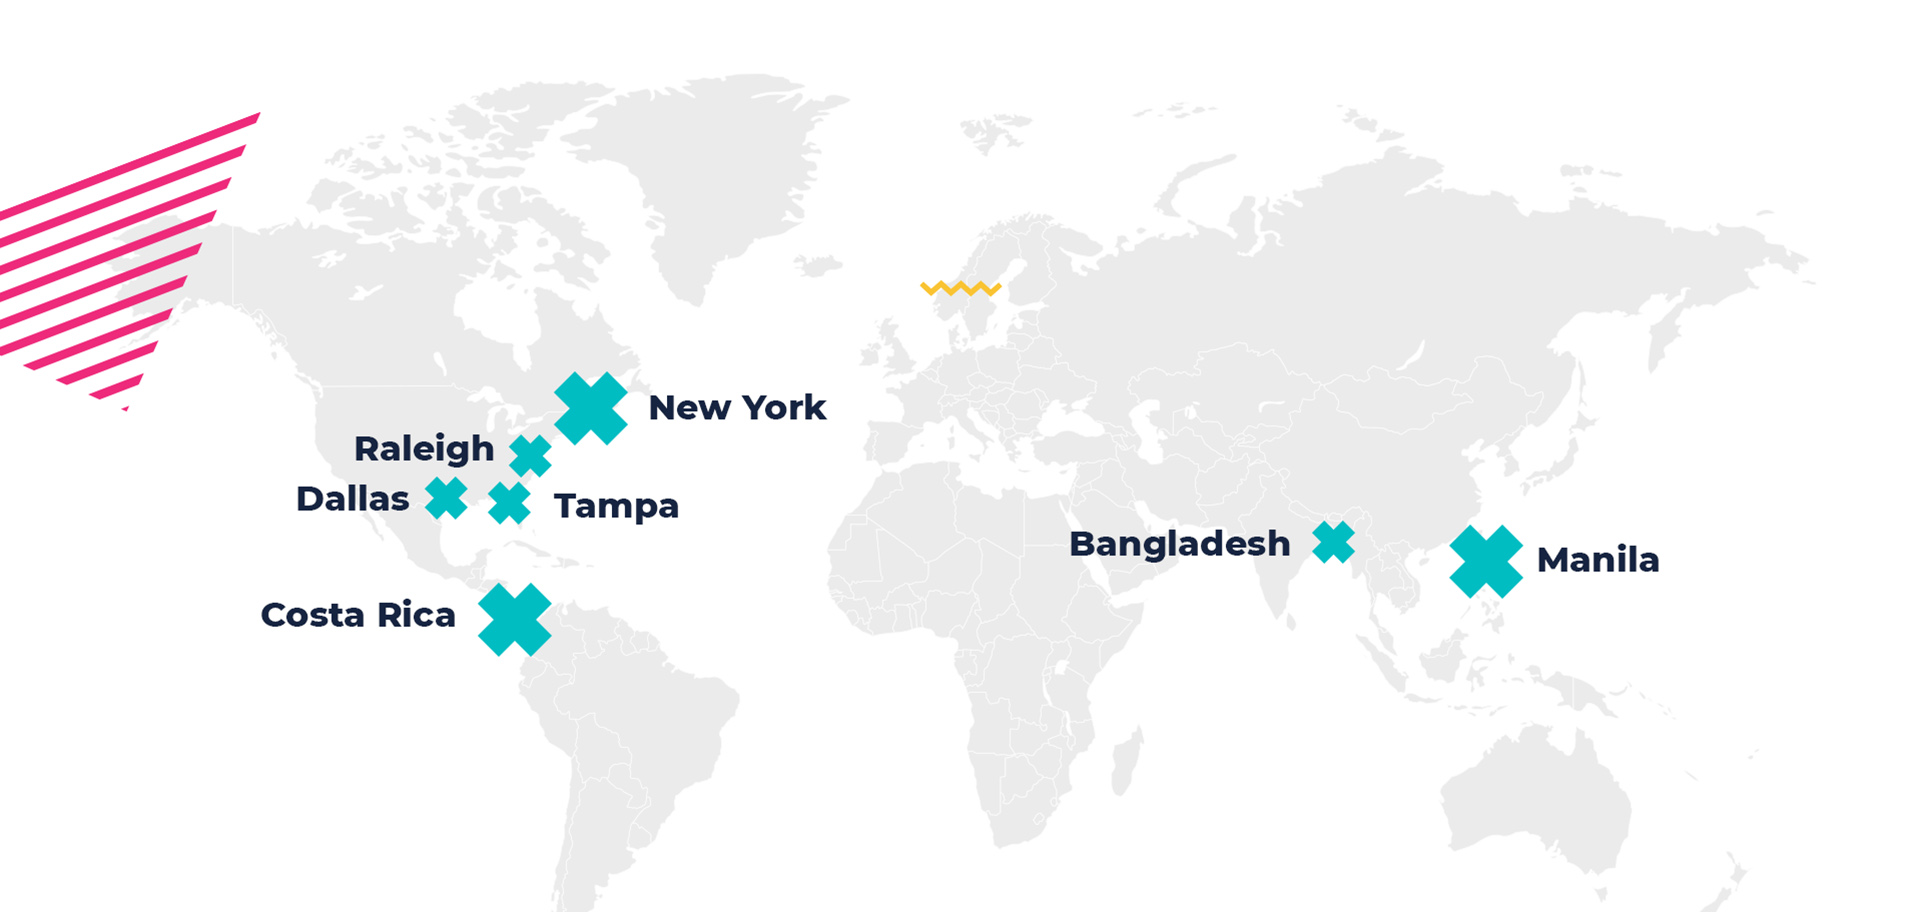 Here's Bold Business Services Locations - New York, Raleigh, Tmpa, Costa rica, Bangladesh, and Manila